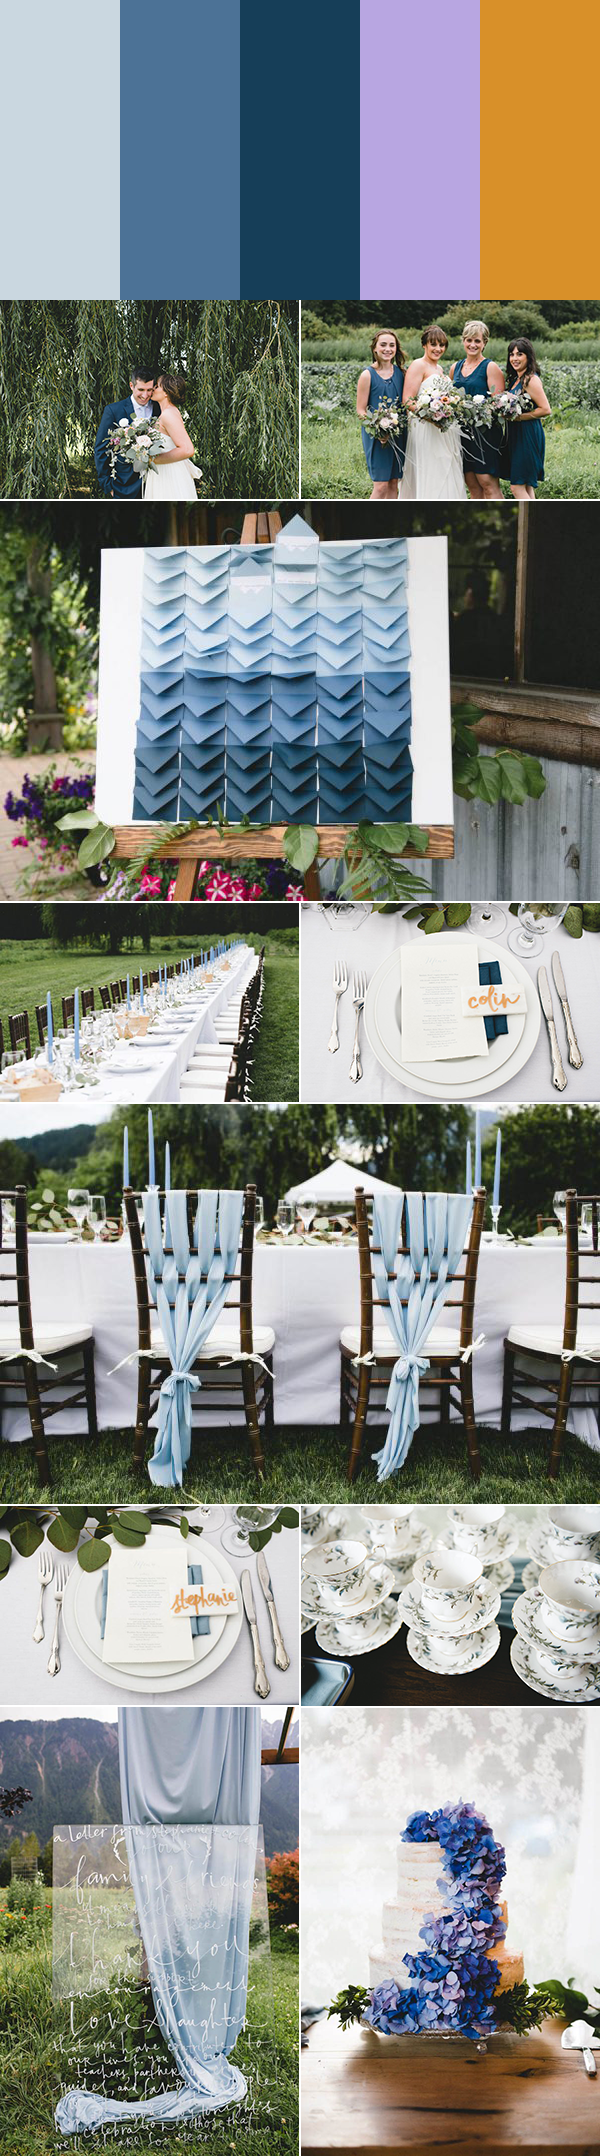 5 Rustic Wedding Color Palette Ideas | Junebug Weddings